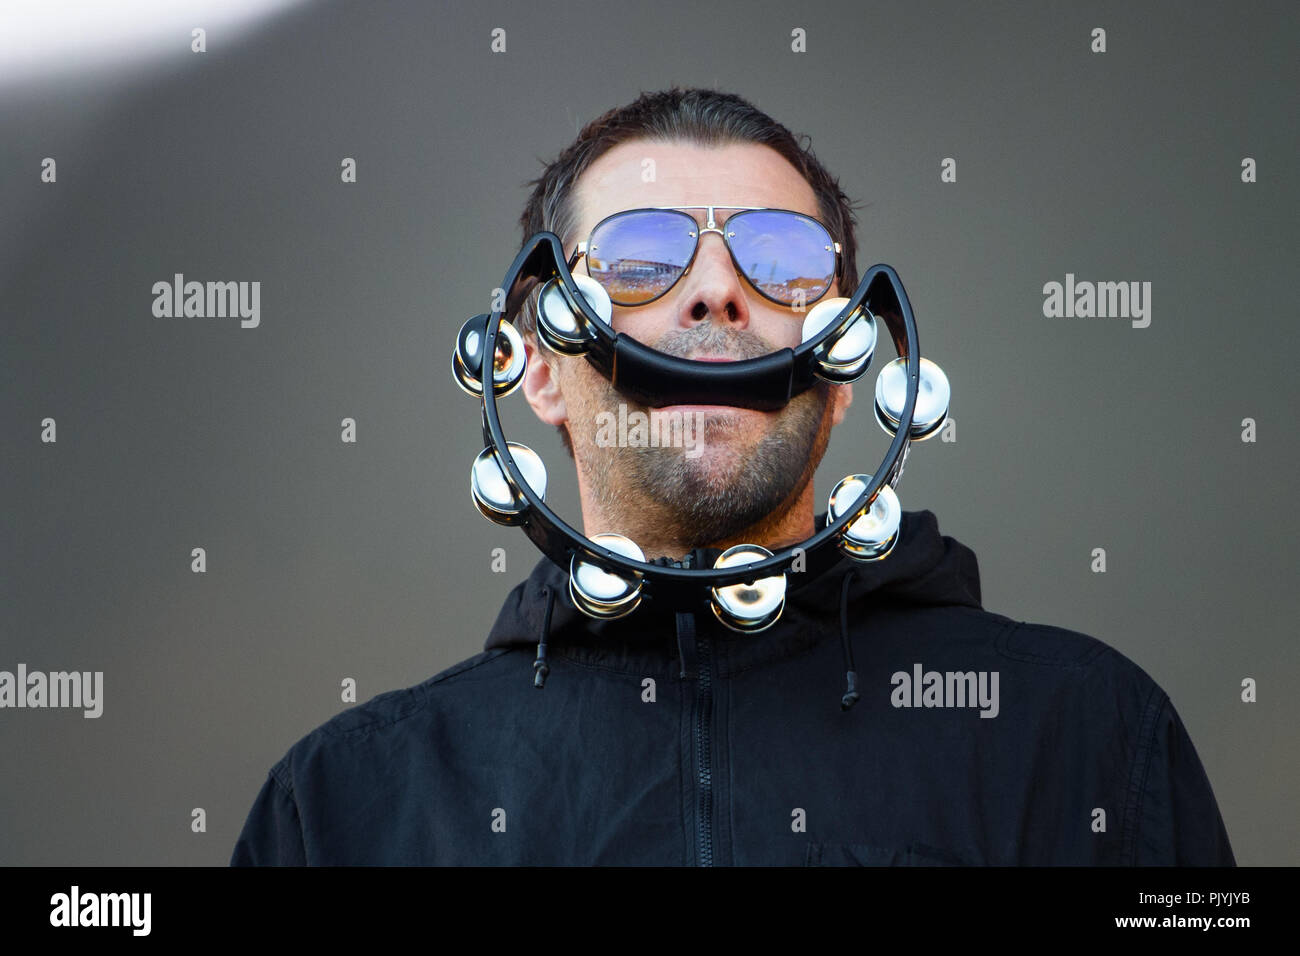 Berlin, Germany. 09th Sep, 2018. The singer and musician Liam Gallagher is on stage at the two-day music festival Lollapalooza on the grounds of the Olympic Park. Credit: Gregor Fischer/dpa/Alamy Live News - Stock Image